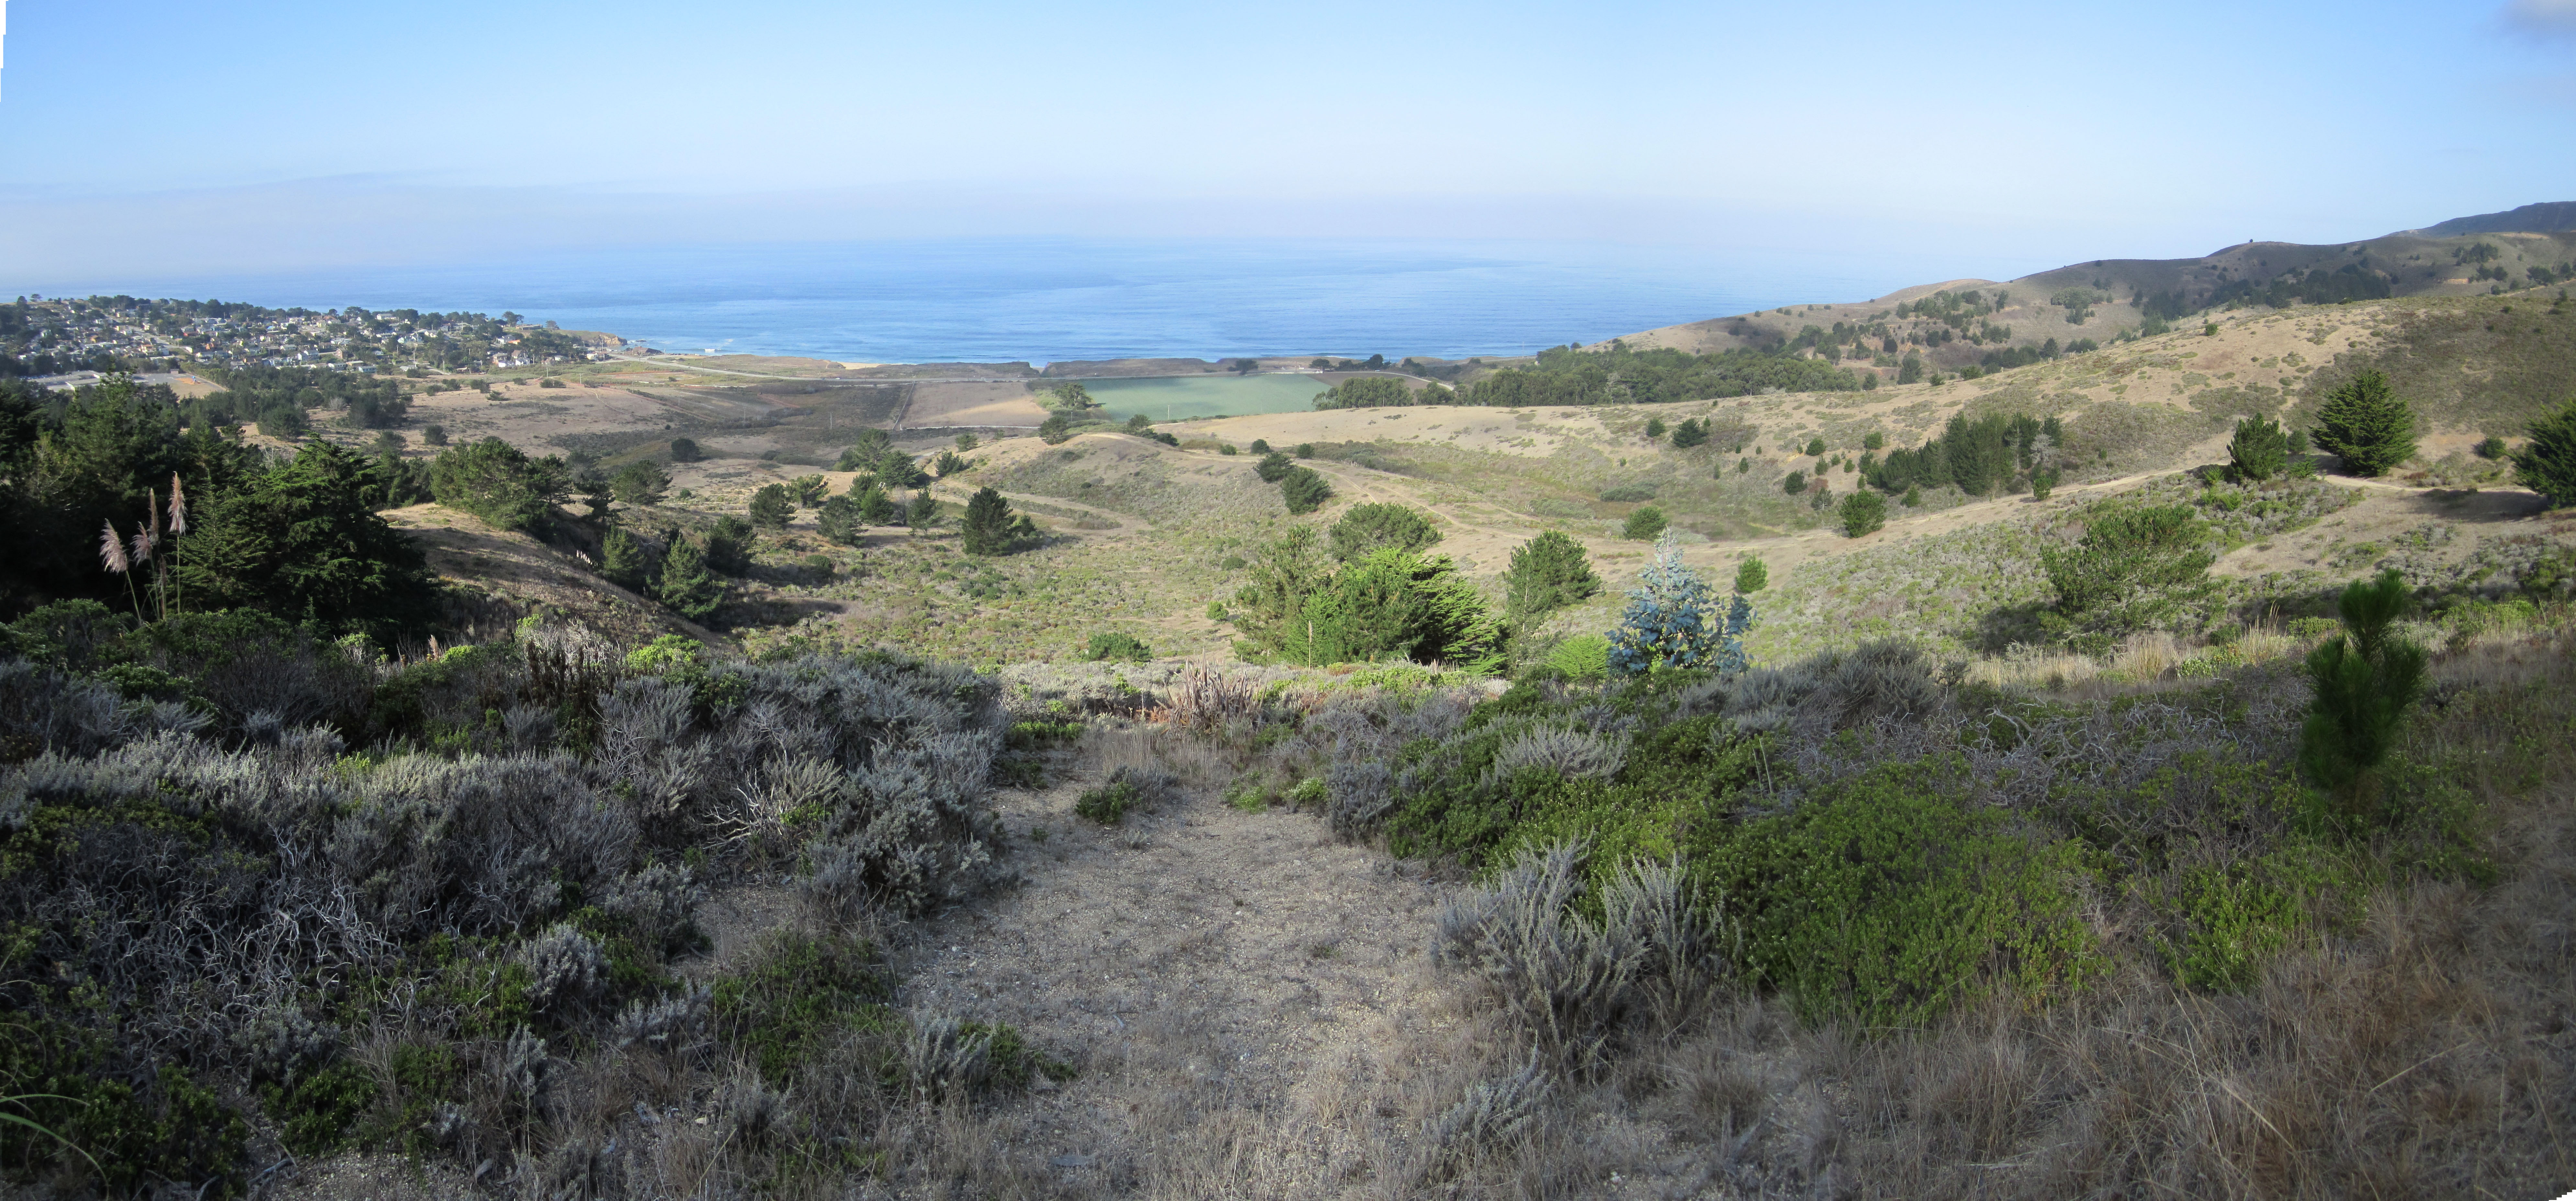 View of the Rancho Corral de Tierra from the mountains found in the east looking toward the Pacific Ocean in the west.